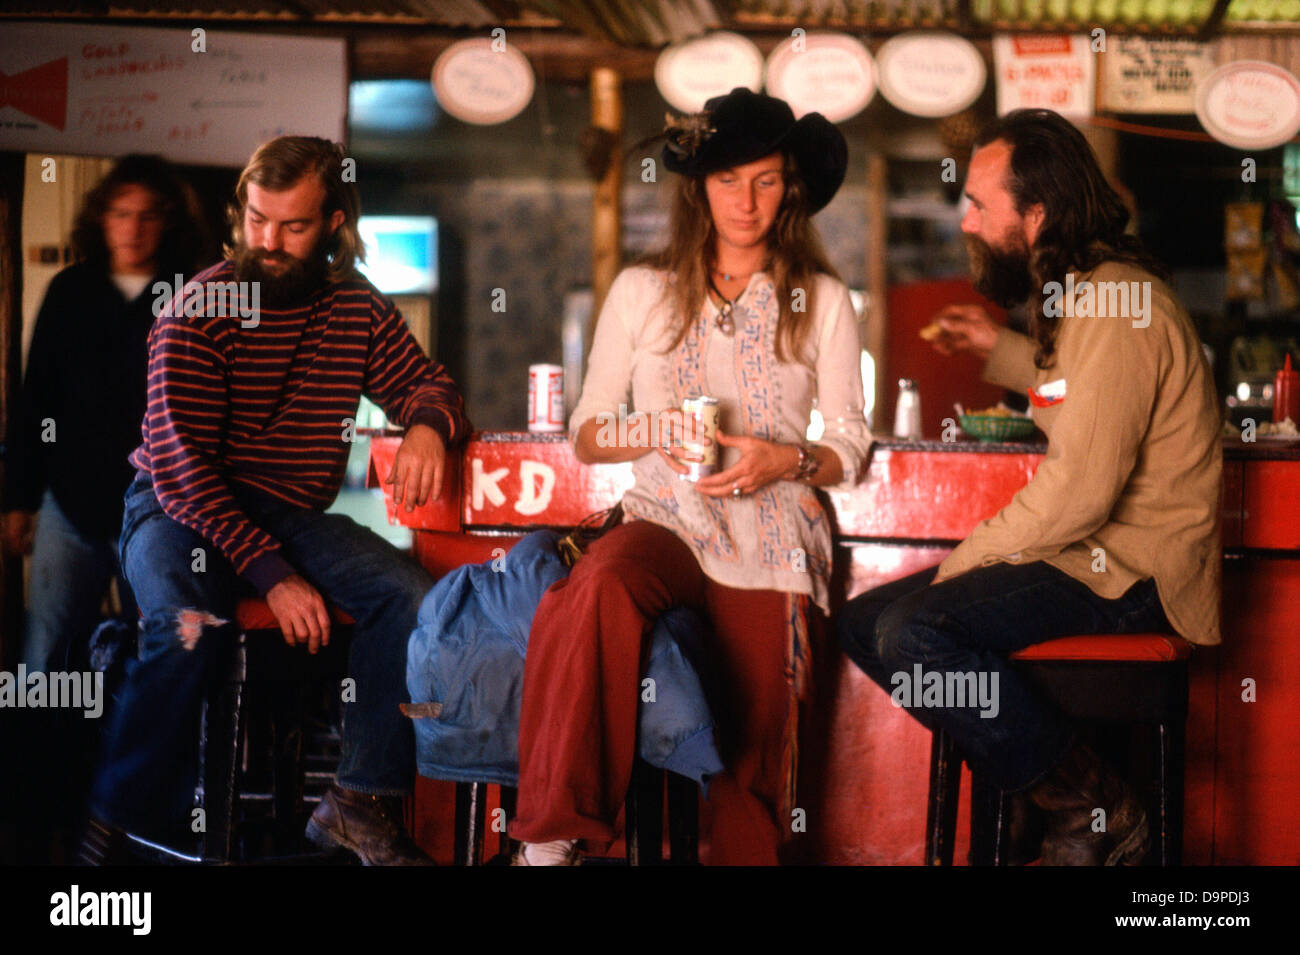 Hippies  having a drink inside a bar in Mendocino,Northern California, USA 1977  KATHY DEWITT - Stock Image